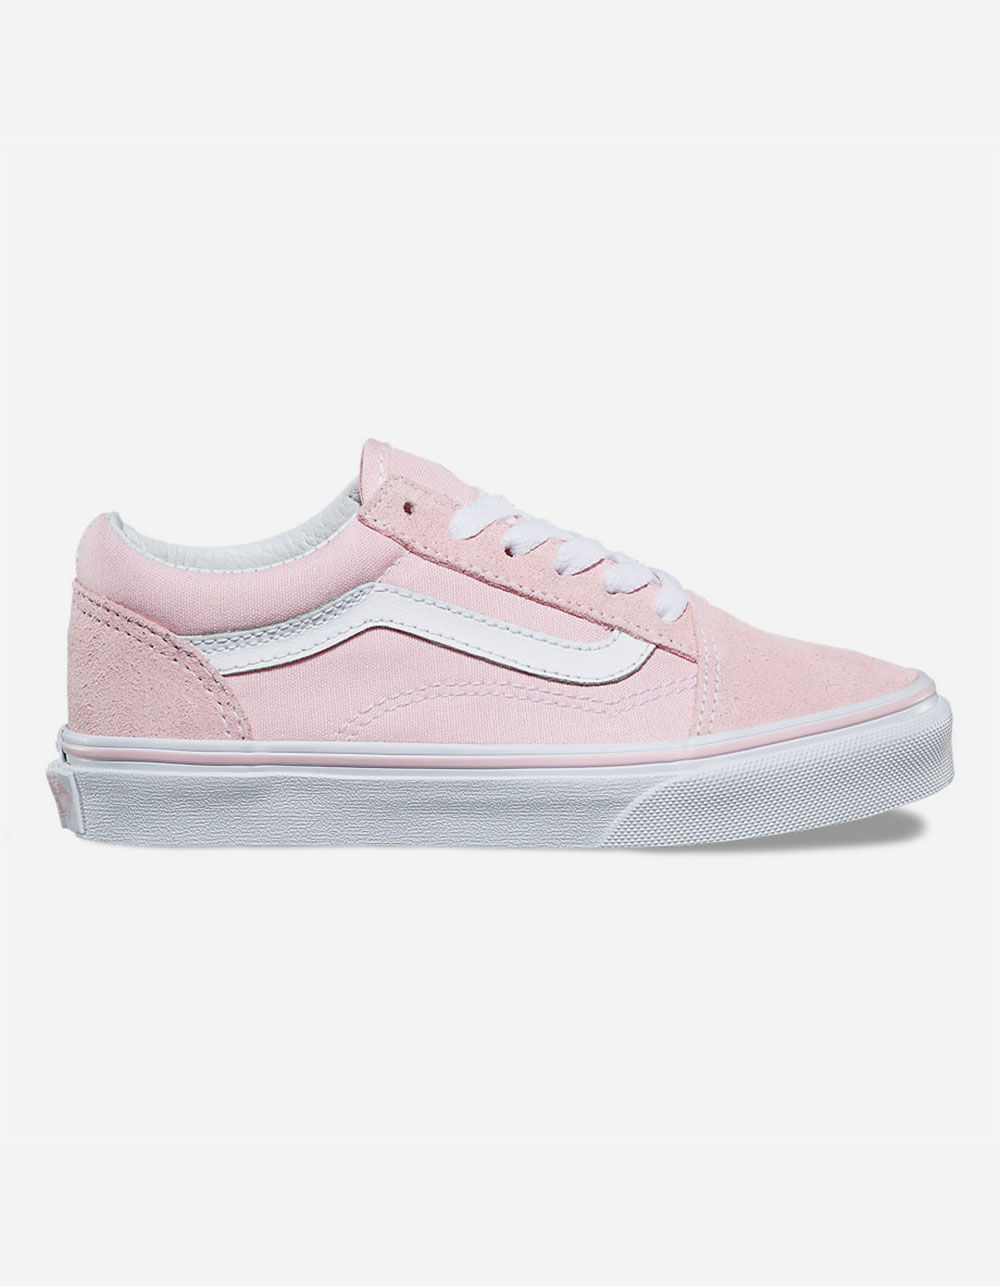 VANS SUEDE & CANVAS OLD SKOOL GIRLS SHOES